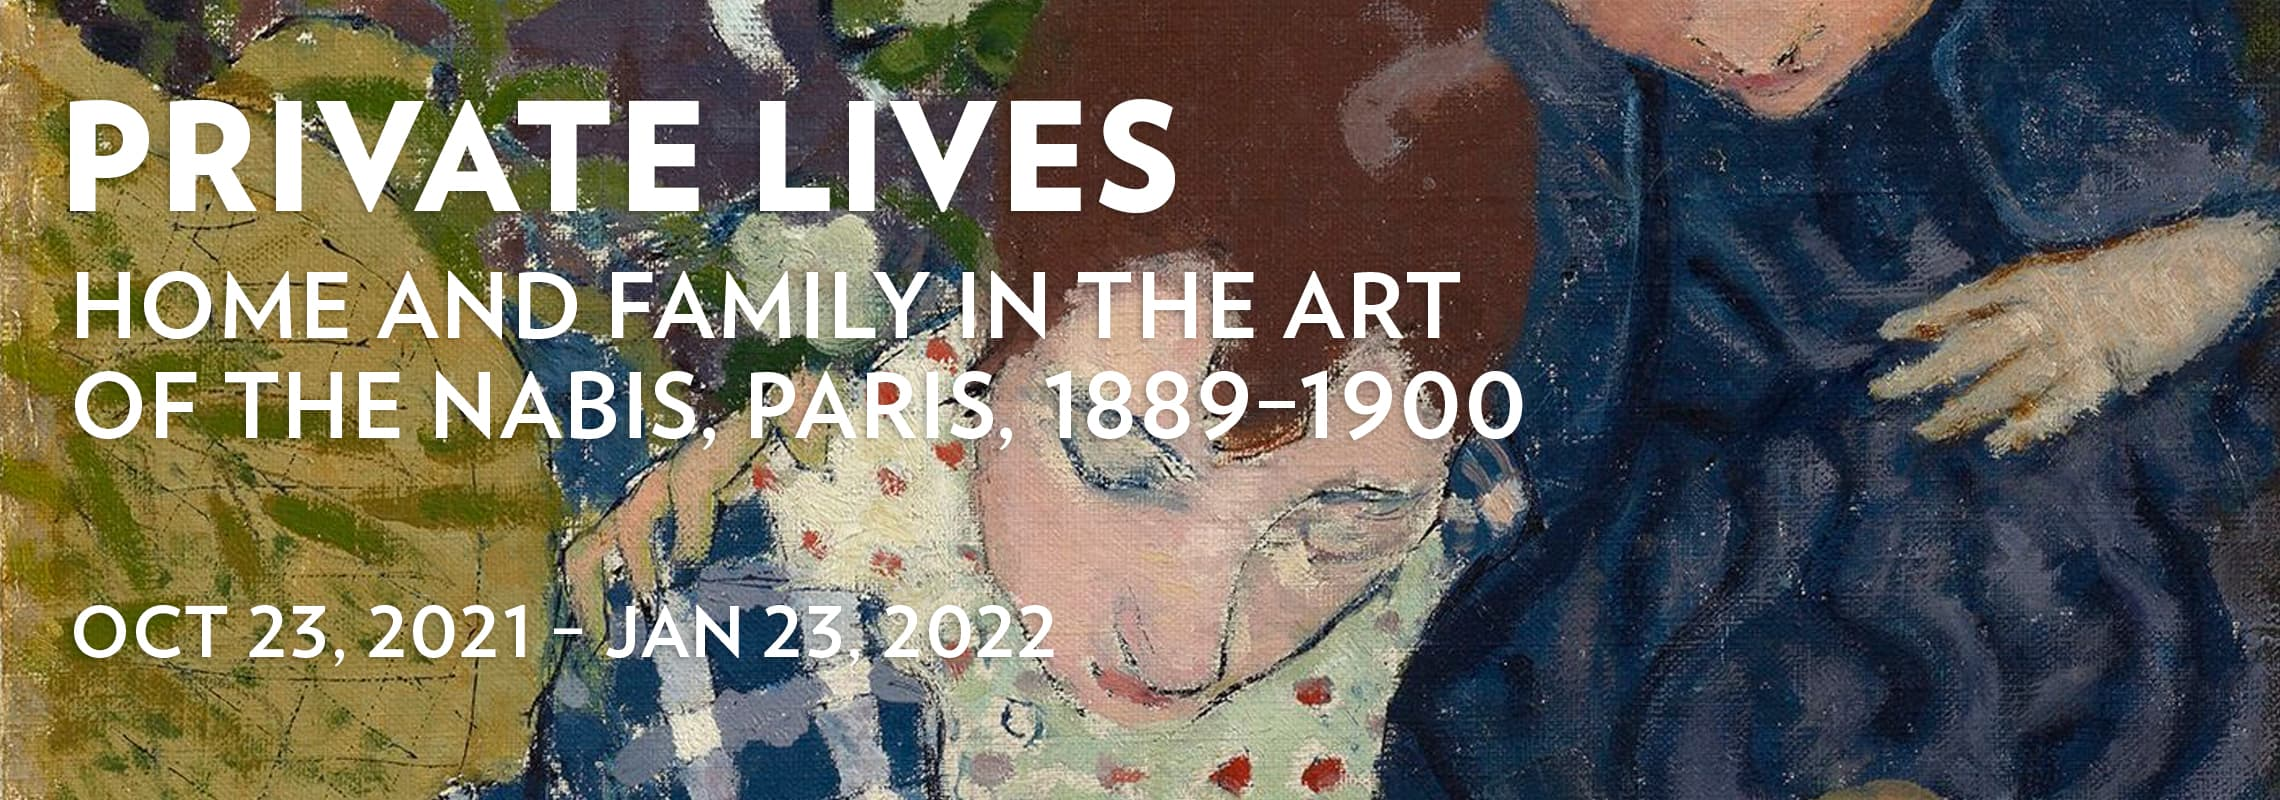 Private Lives: Oct 23, 2021 – Jan 23, 2022